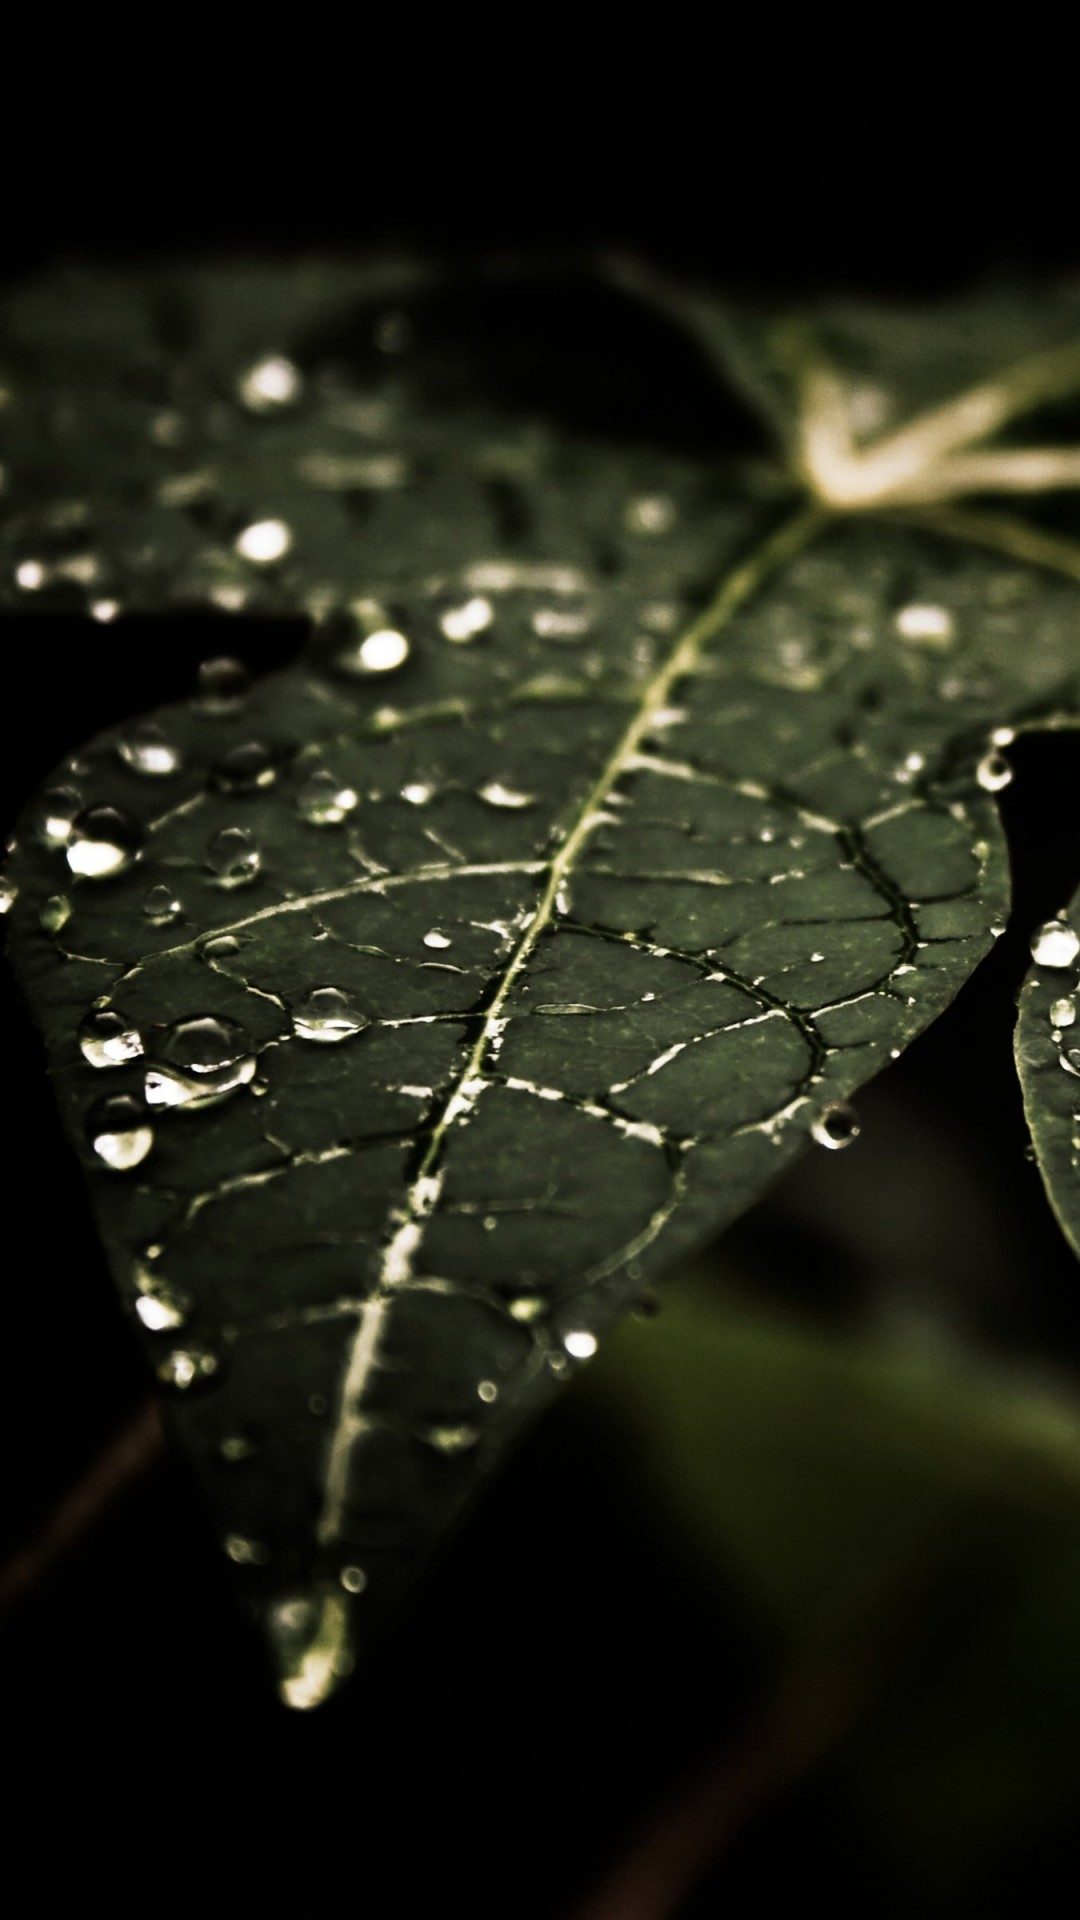 Droplets On Leaves Wallpaper for LG G2